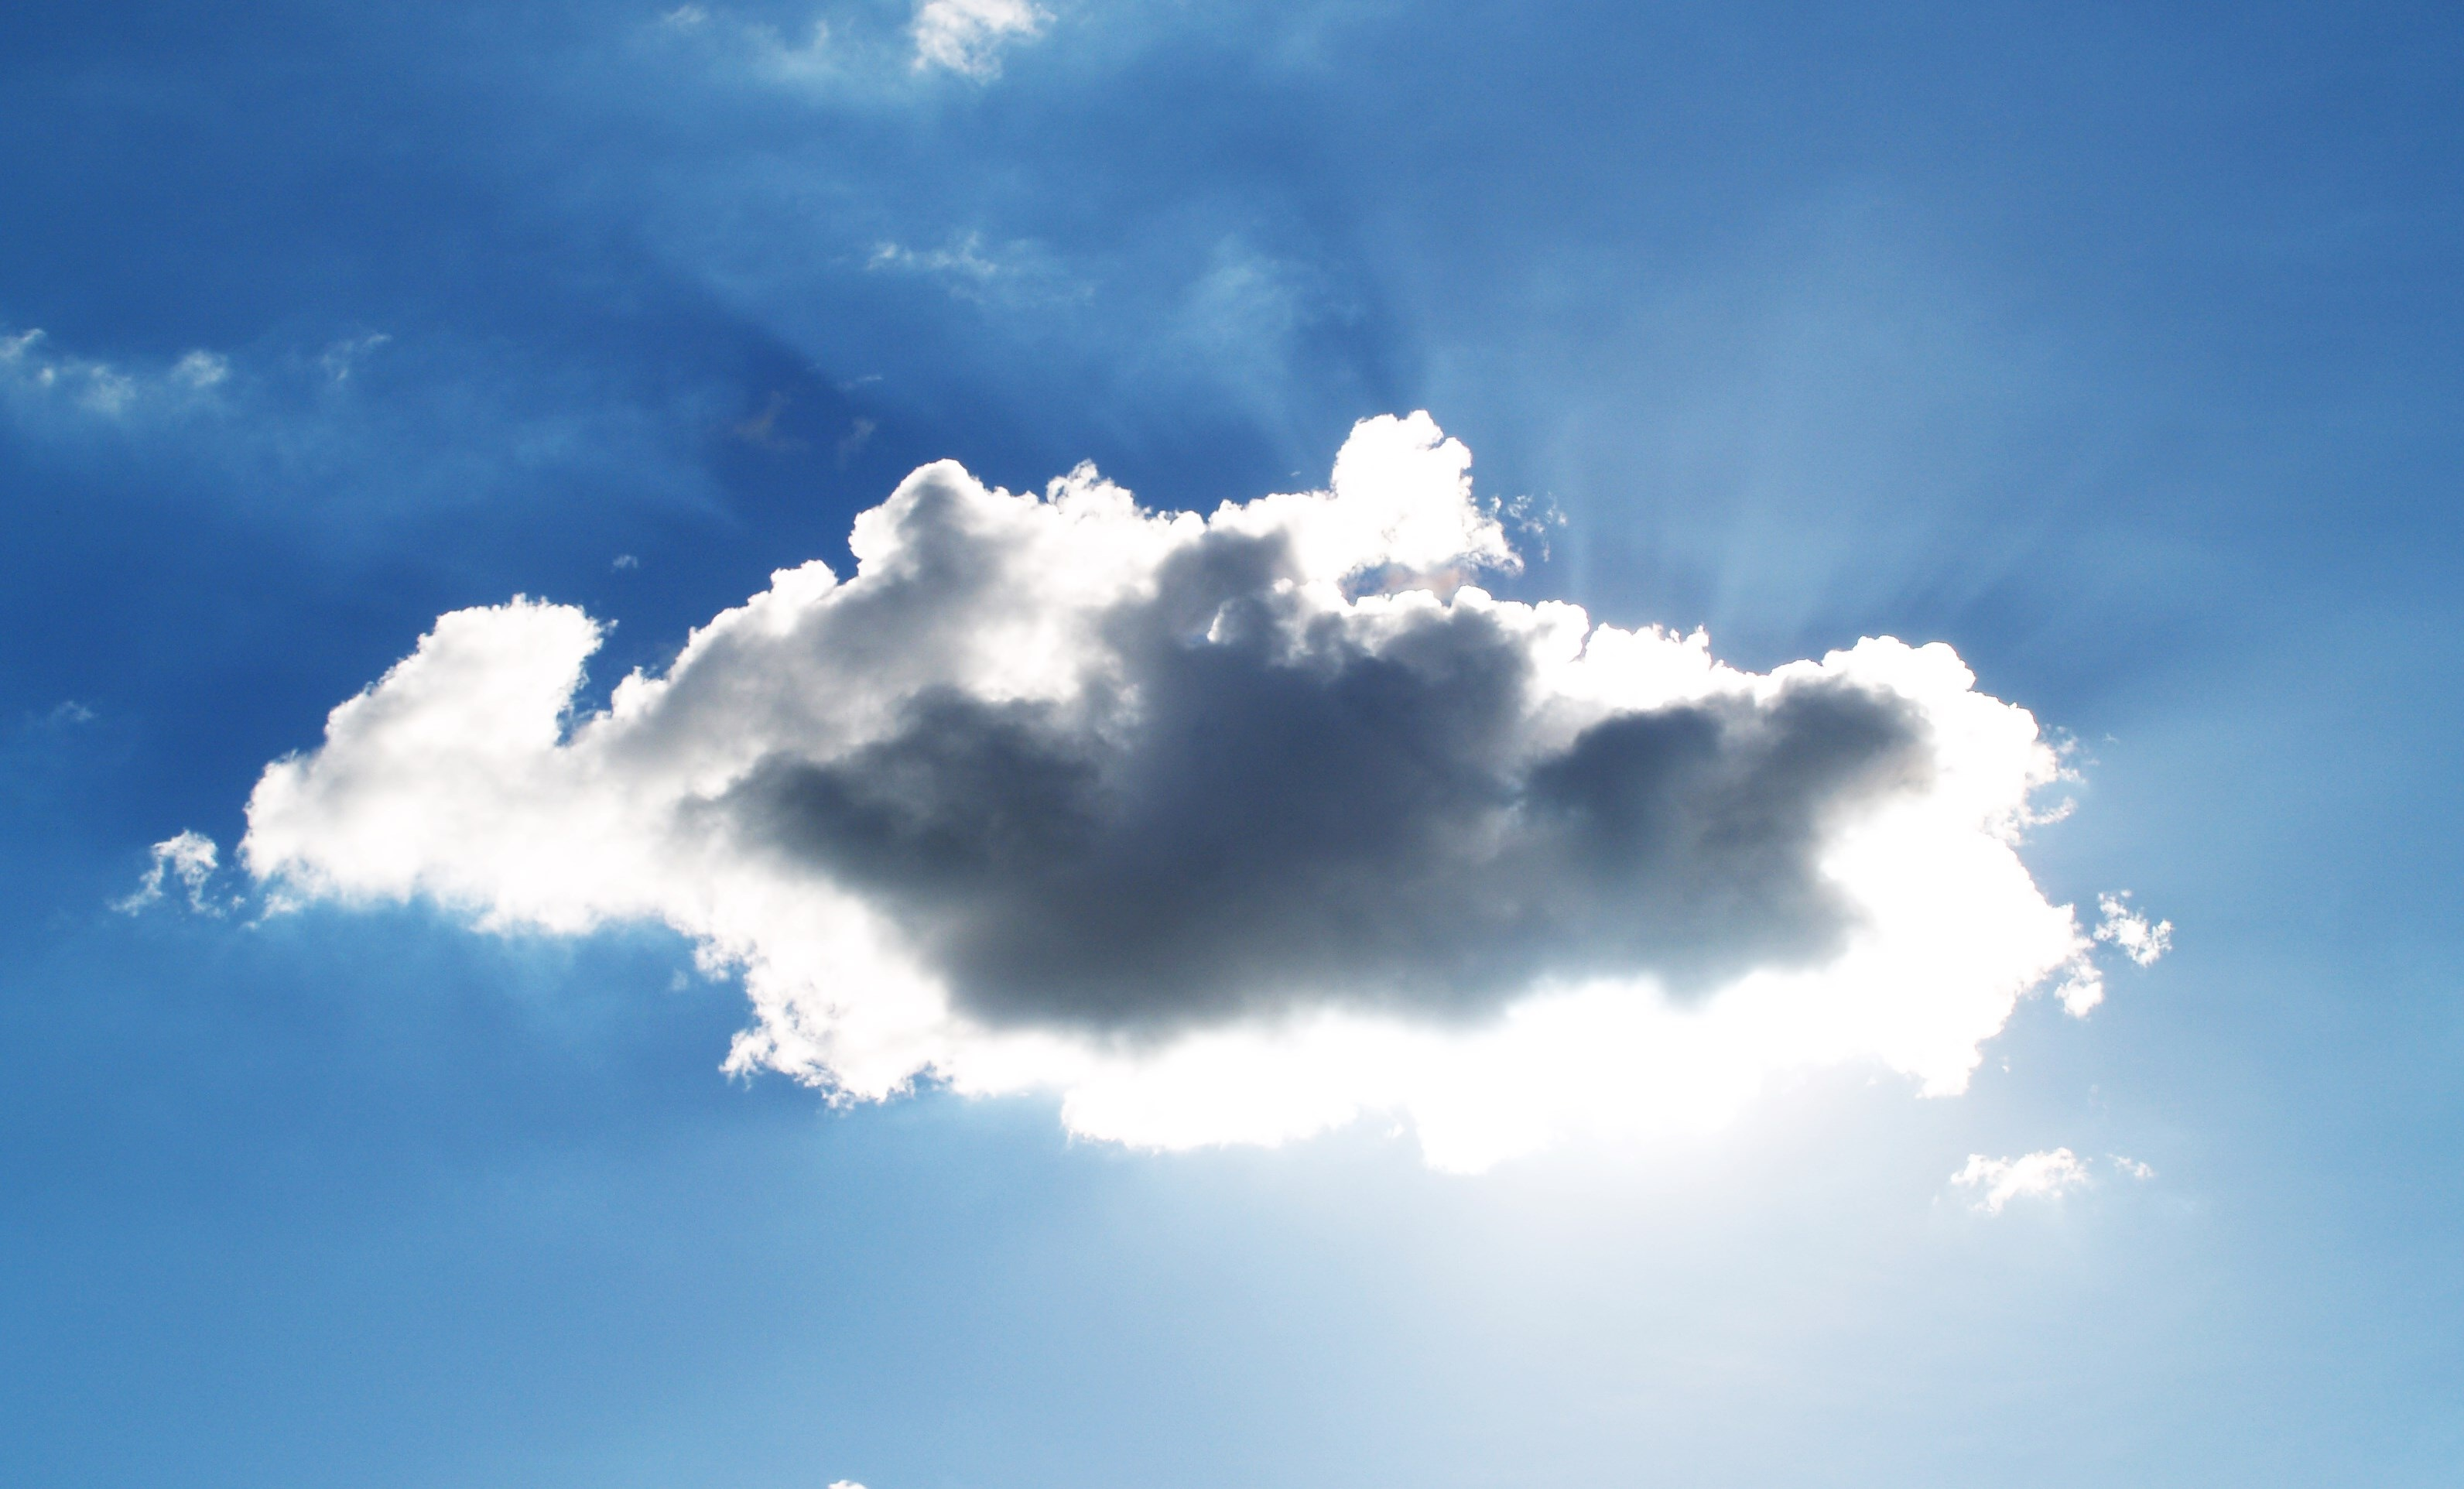 Philippians 4 13 Iphone Wallpaper Free Stock Photo Of Blue Clouds Cloudy